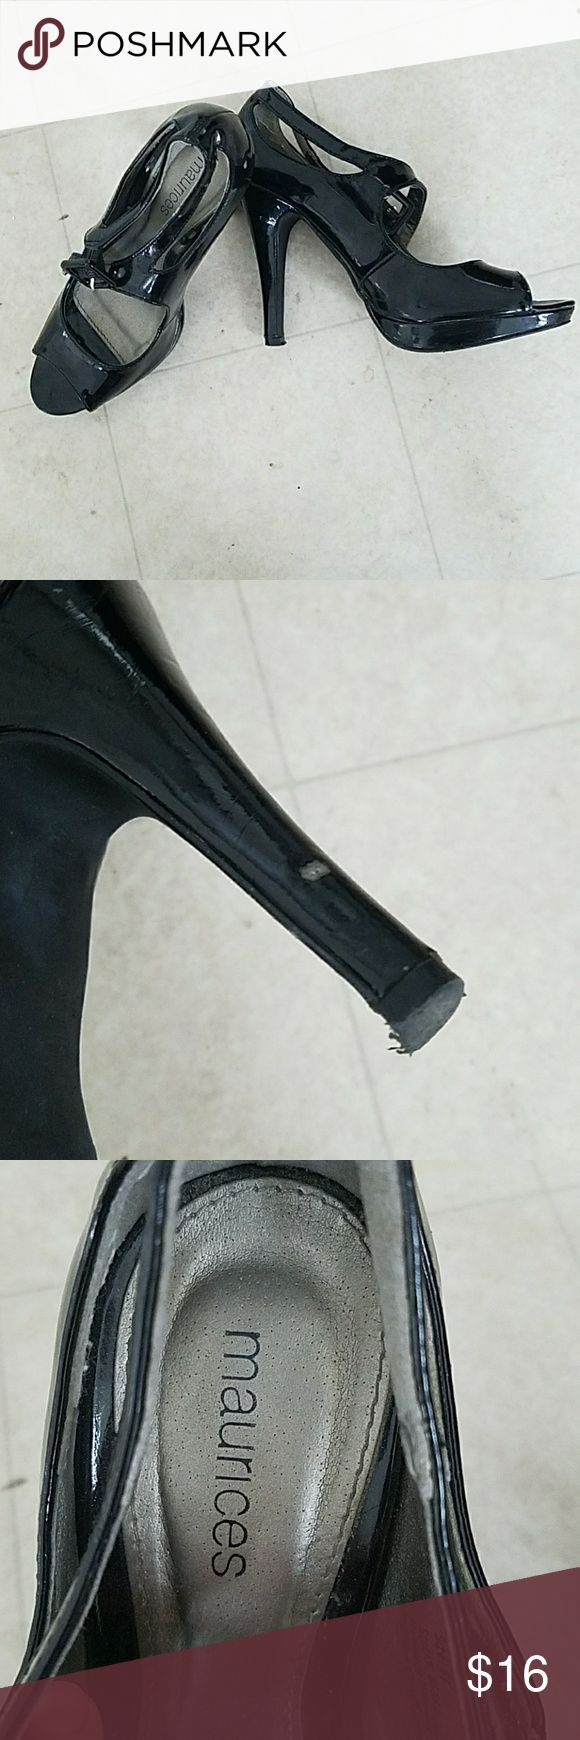 Black heels Black fun heels. There are a few scratches but very minor Maurices Shoes Heels